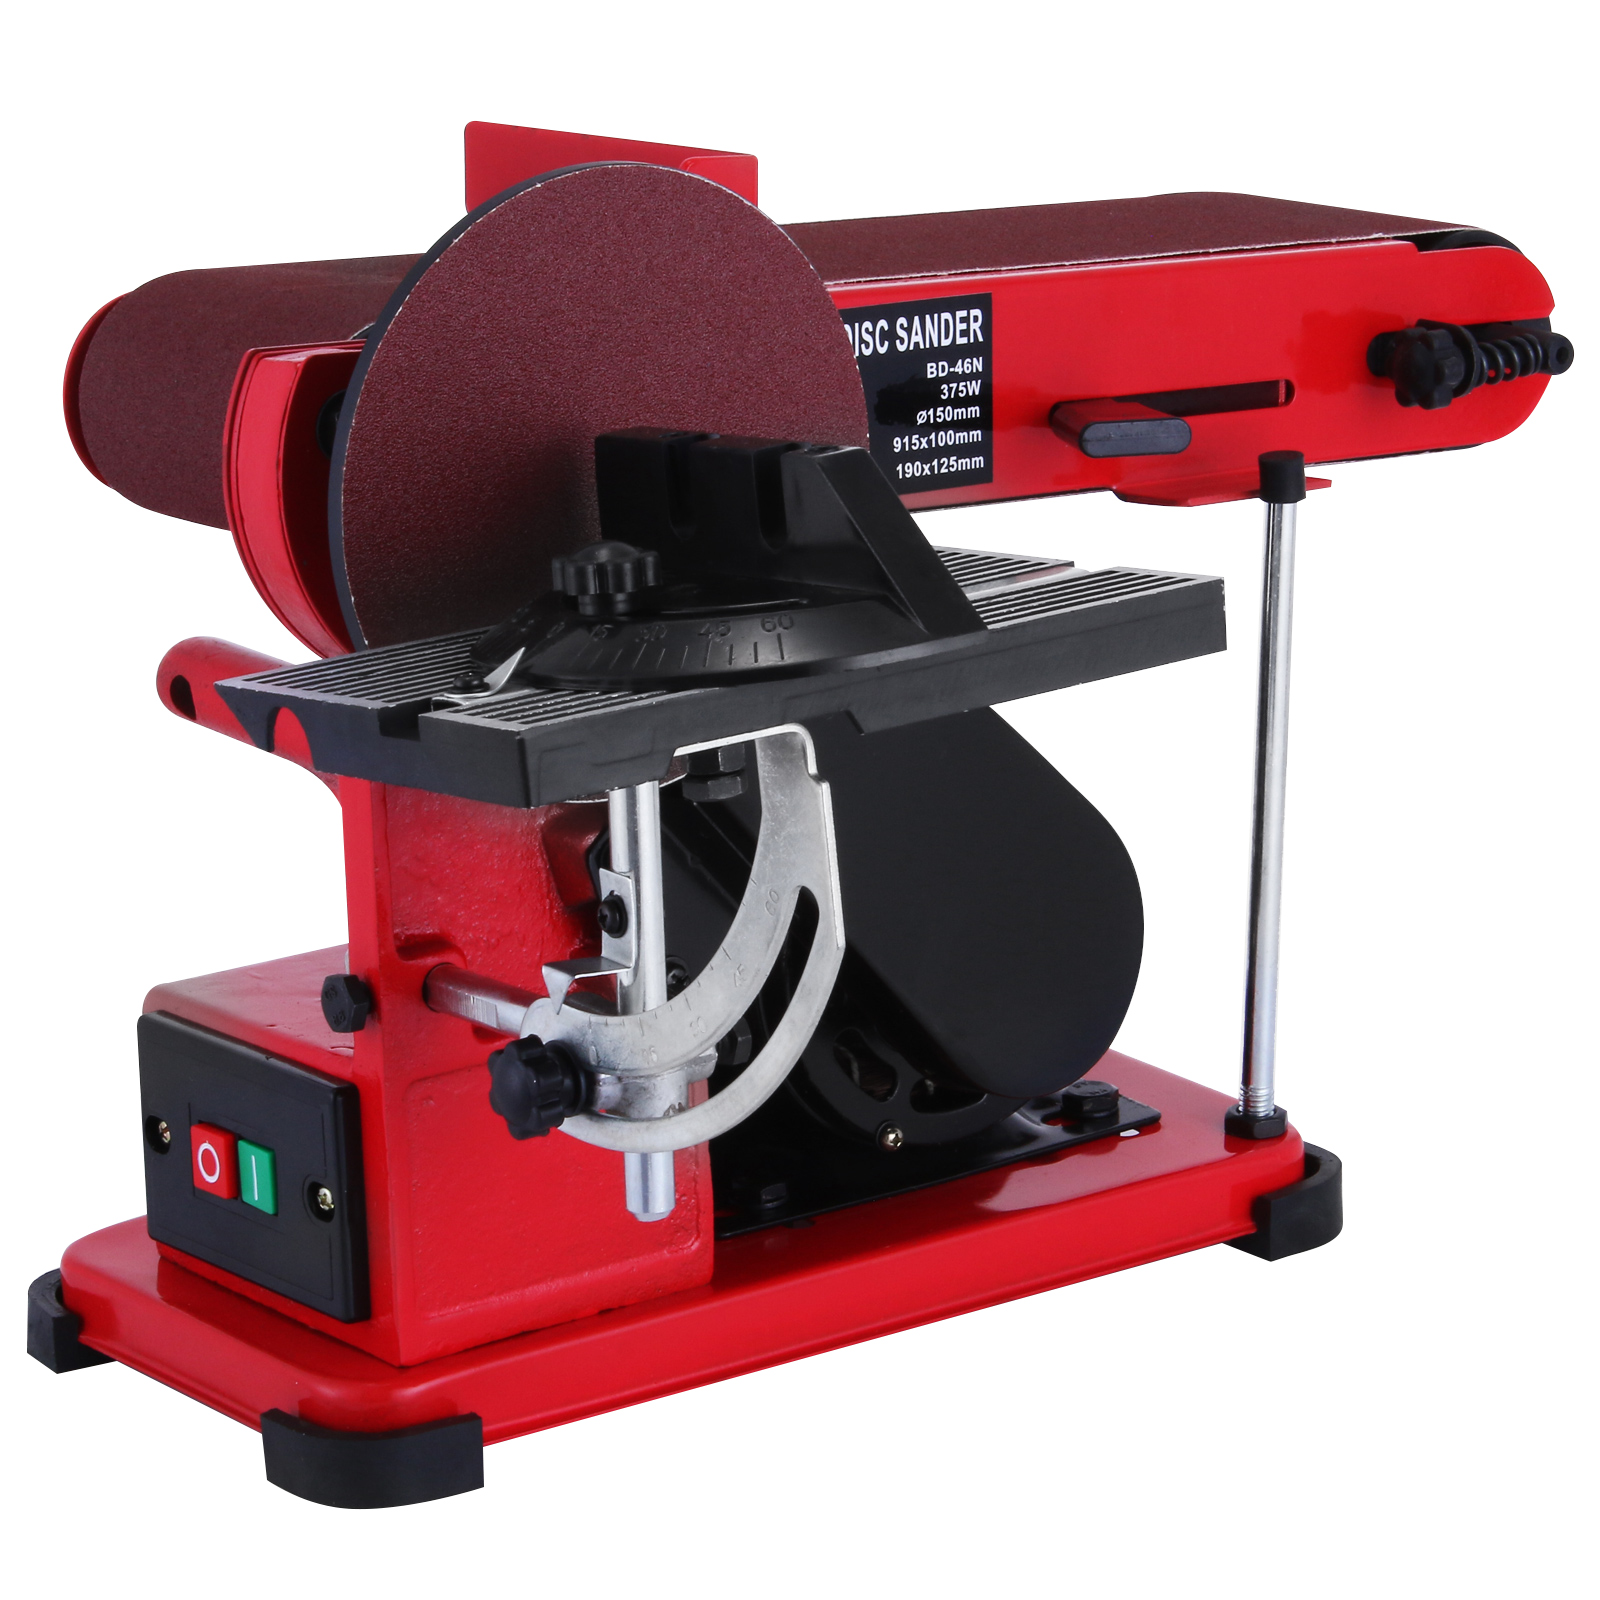 375w bench belt and disc sander grinder aluminum frame benchtop linisher machine ebay Bench belt sander